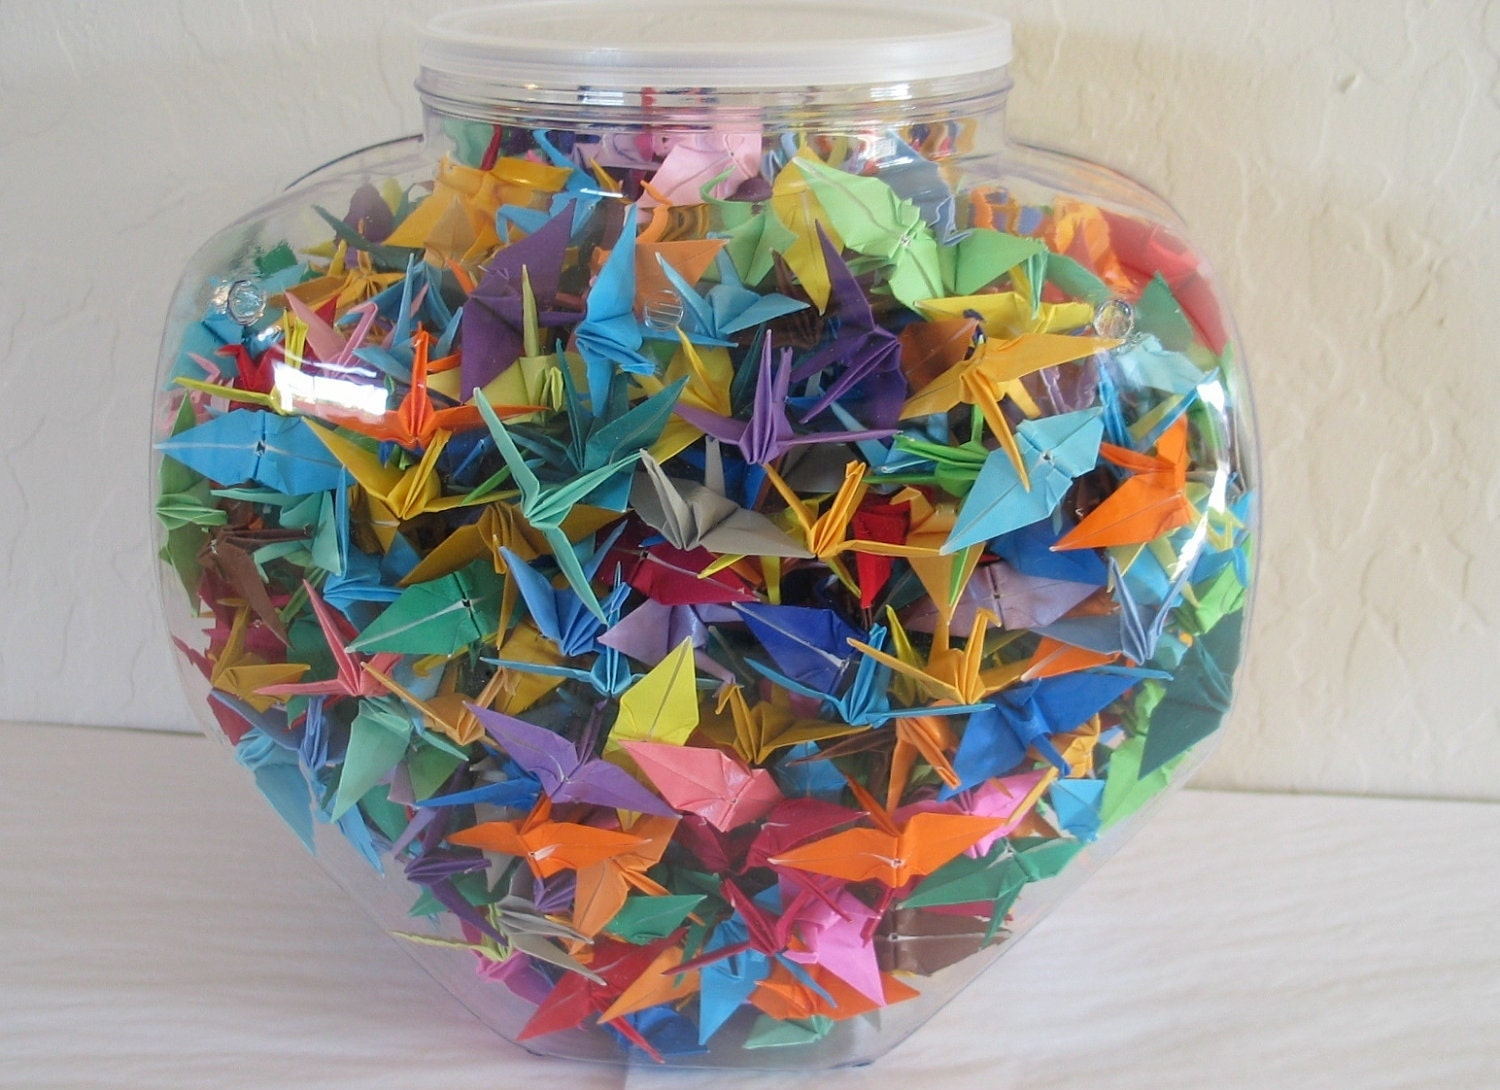 One thousand 1000 hand made 2 origami paper cranes by for 1000 paper cranes wedding decoration